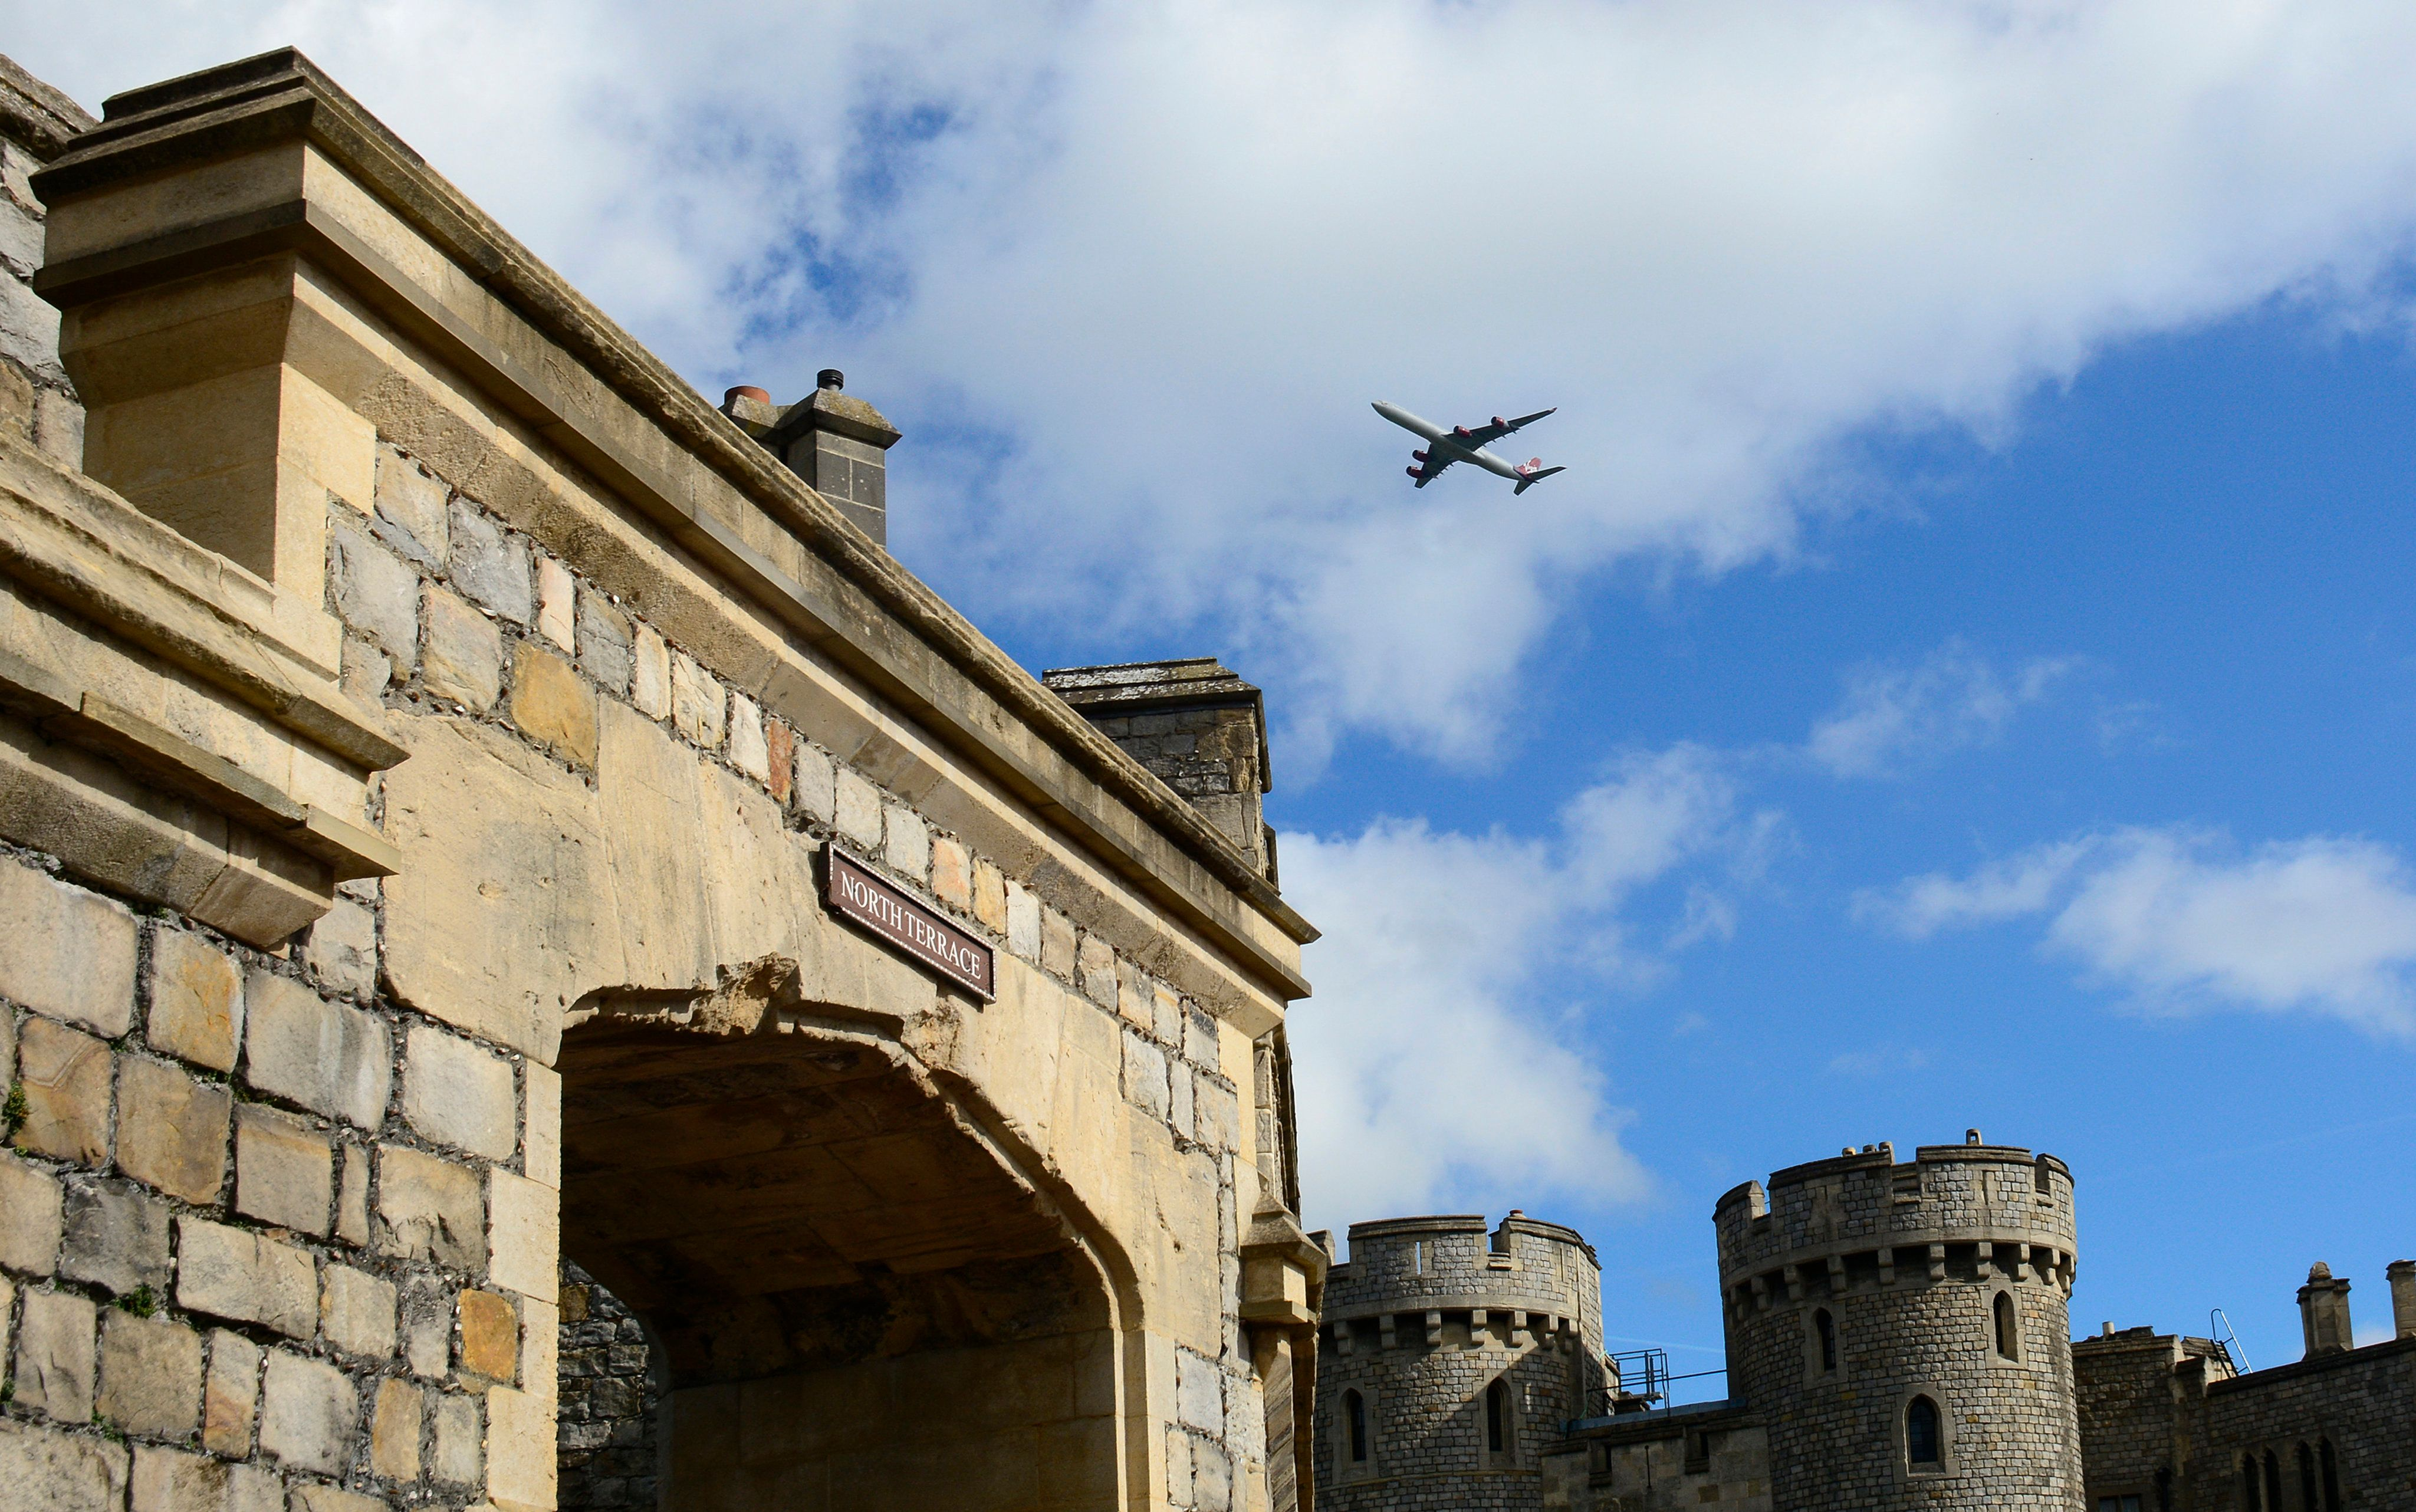 The Crucial Royal Wedding Moment Won't Be Ruined By Plane Noise